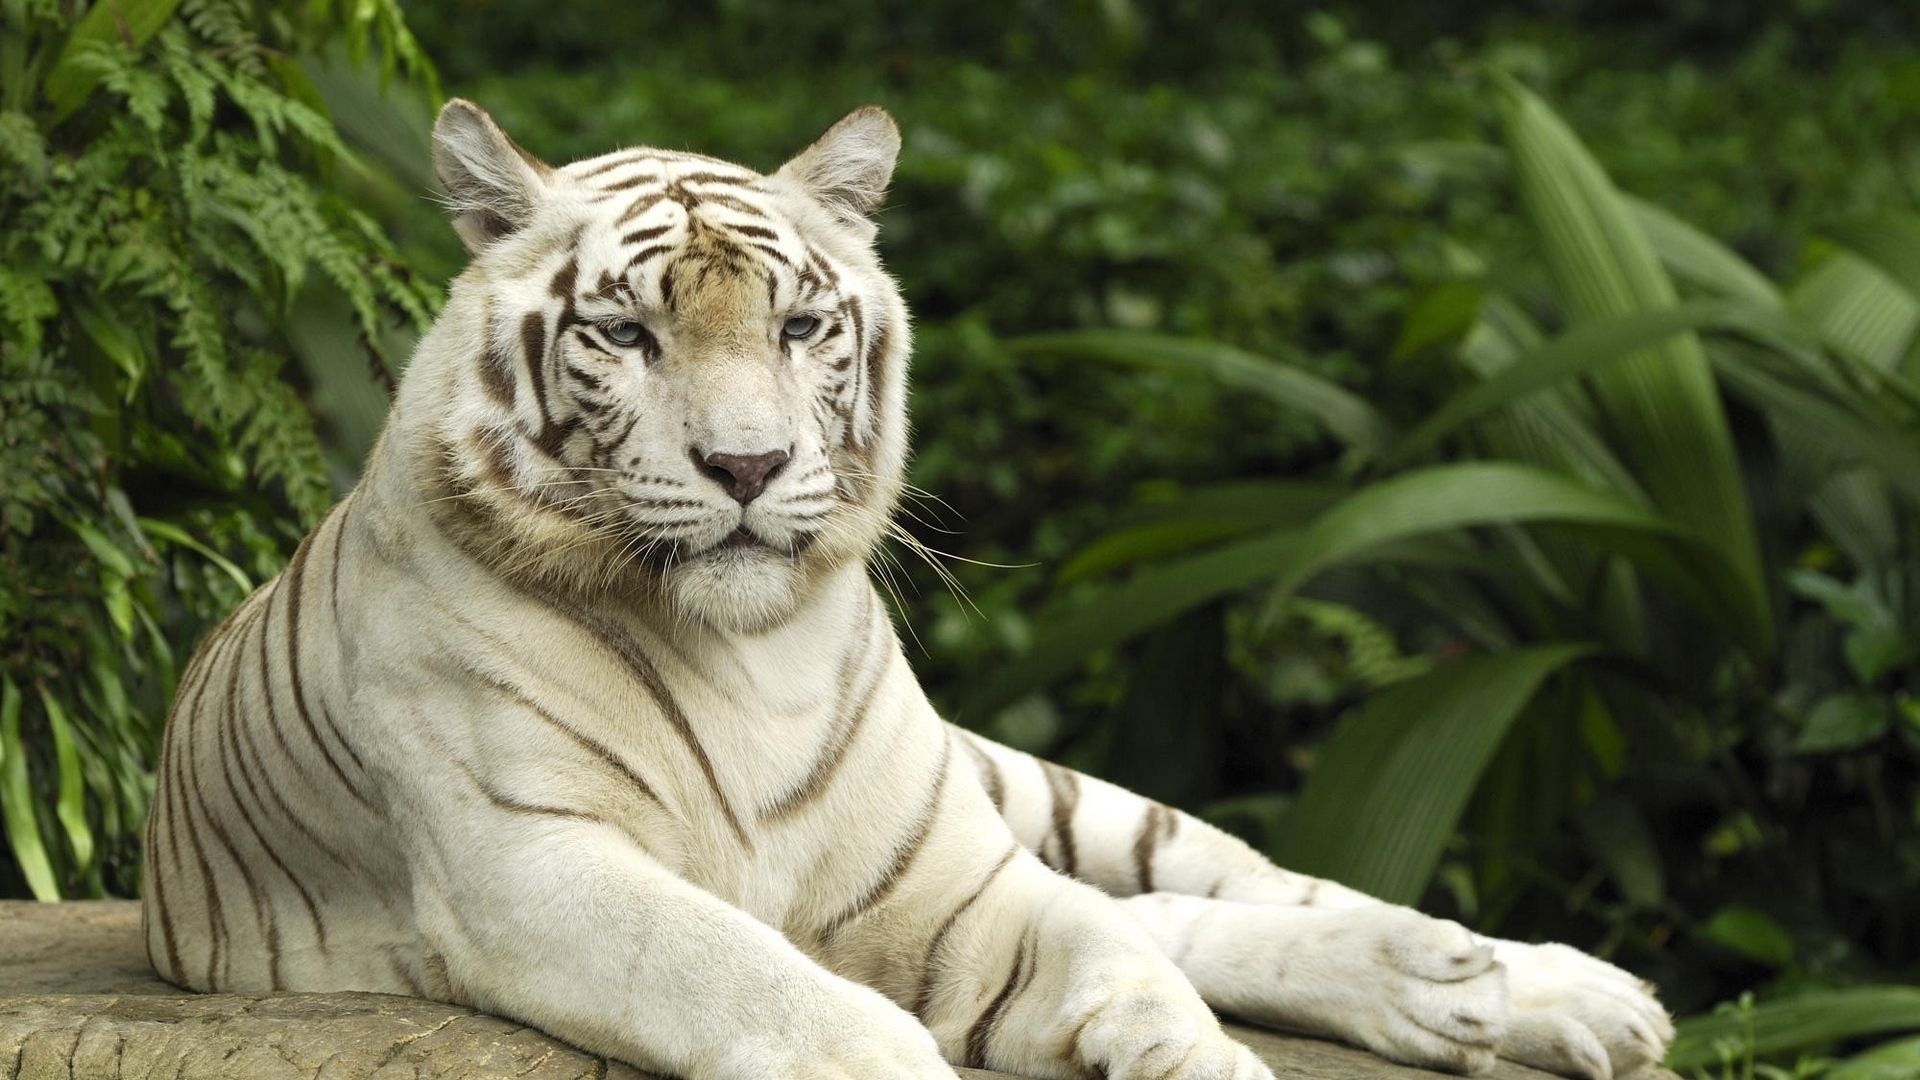 White Tiger Tiger likes to relax, Wallpaper Theme